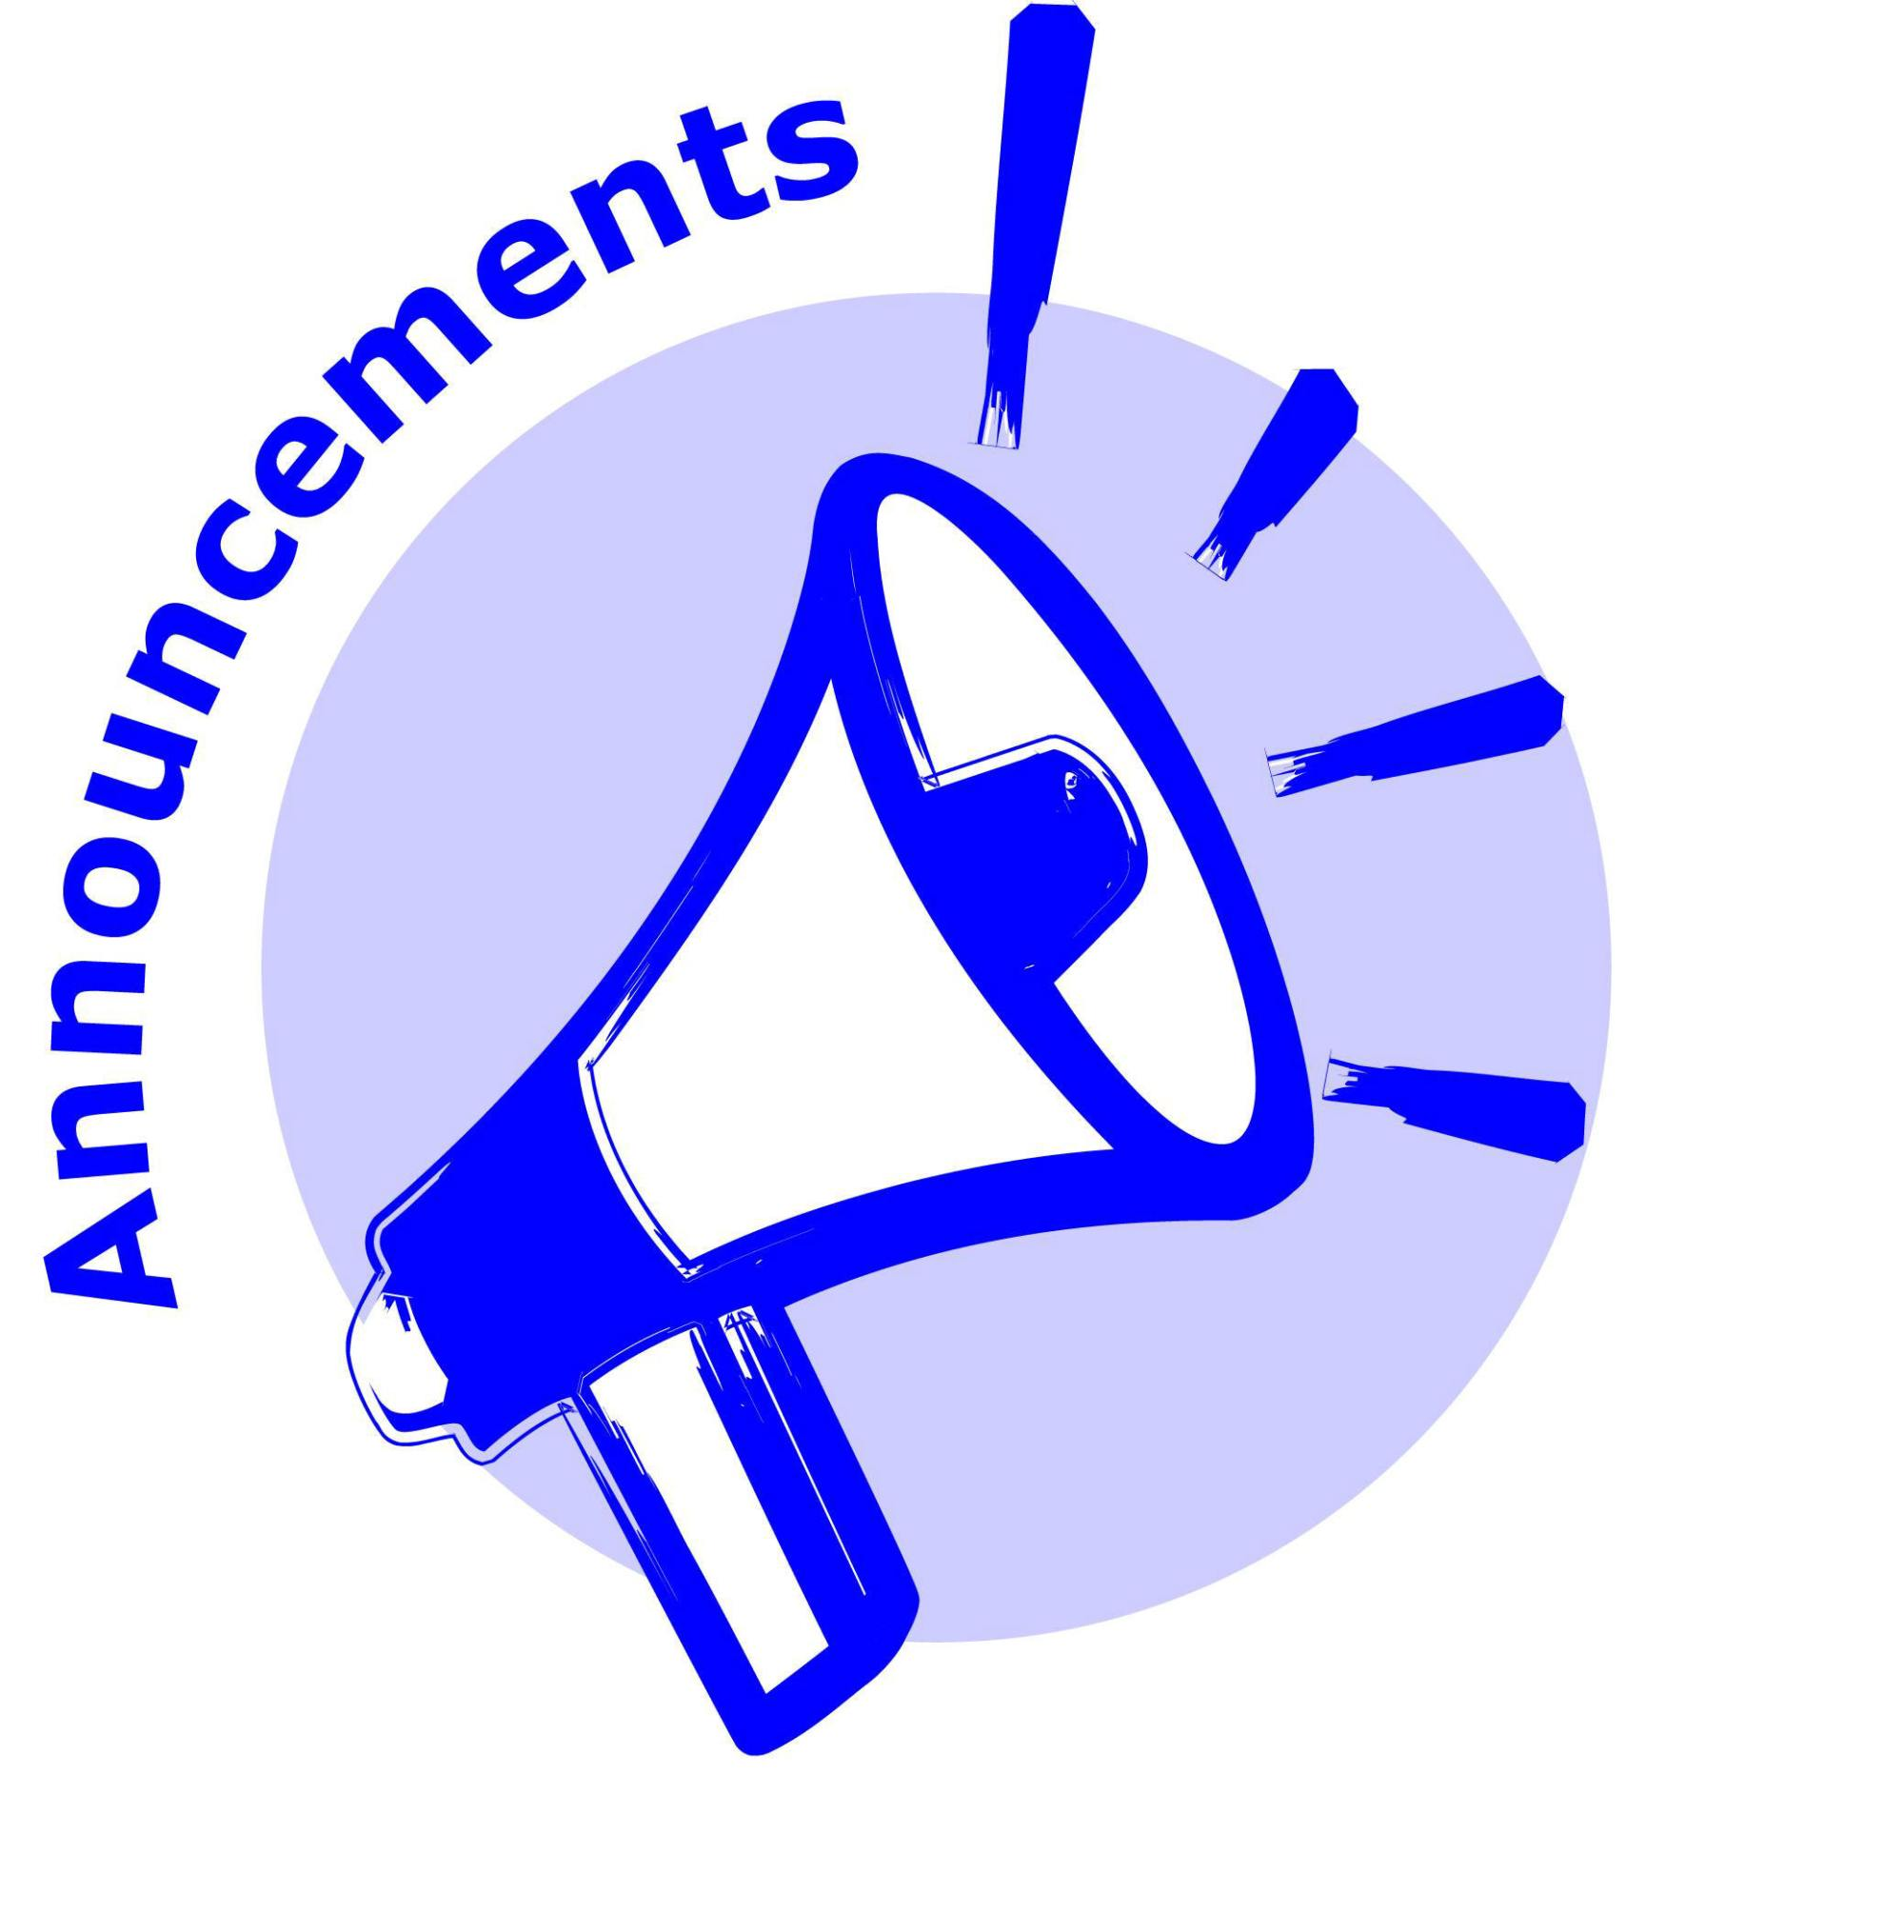 hight resolution of image of announcement clipart 0 announcements clipart 2 image